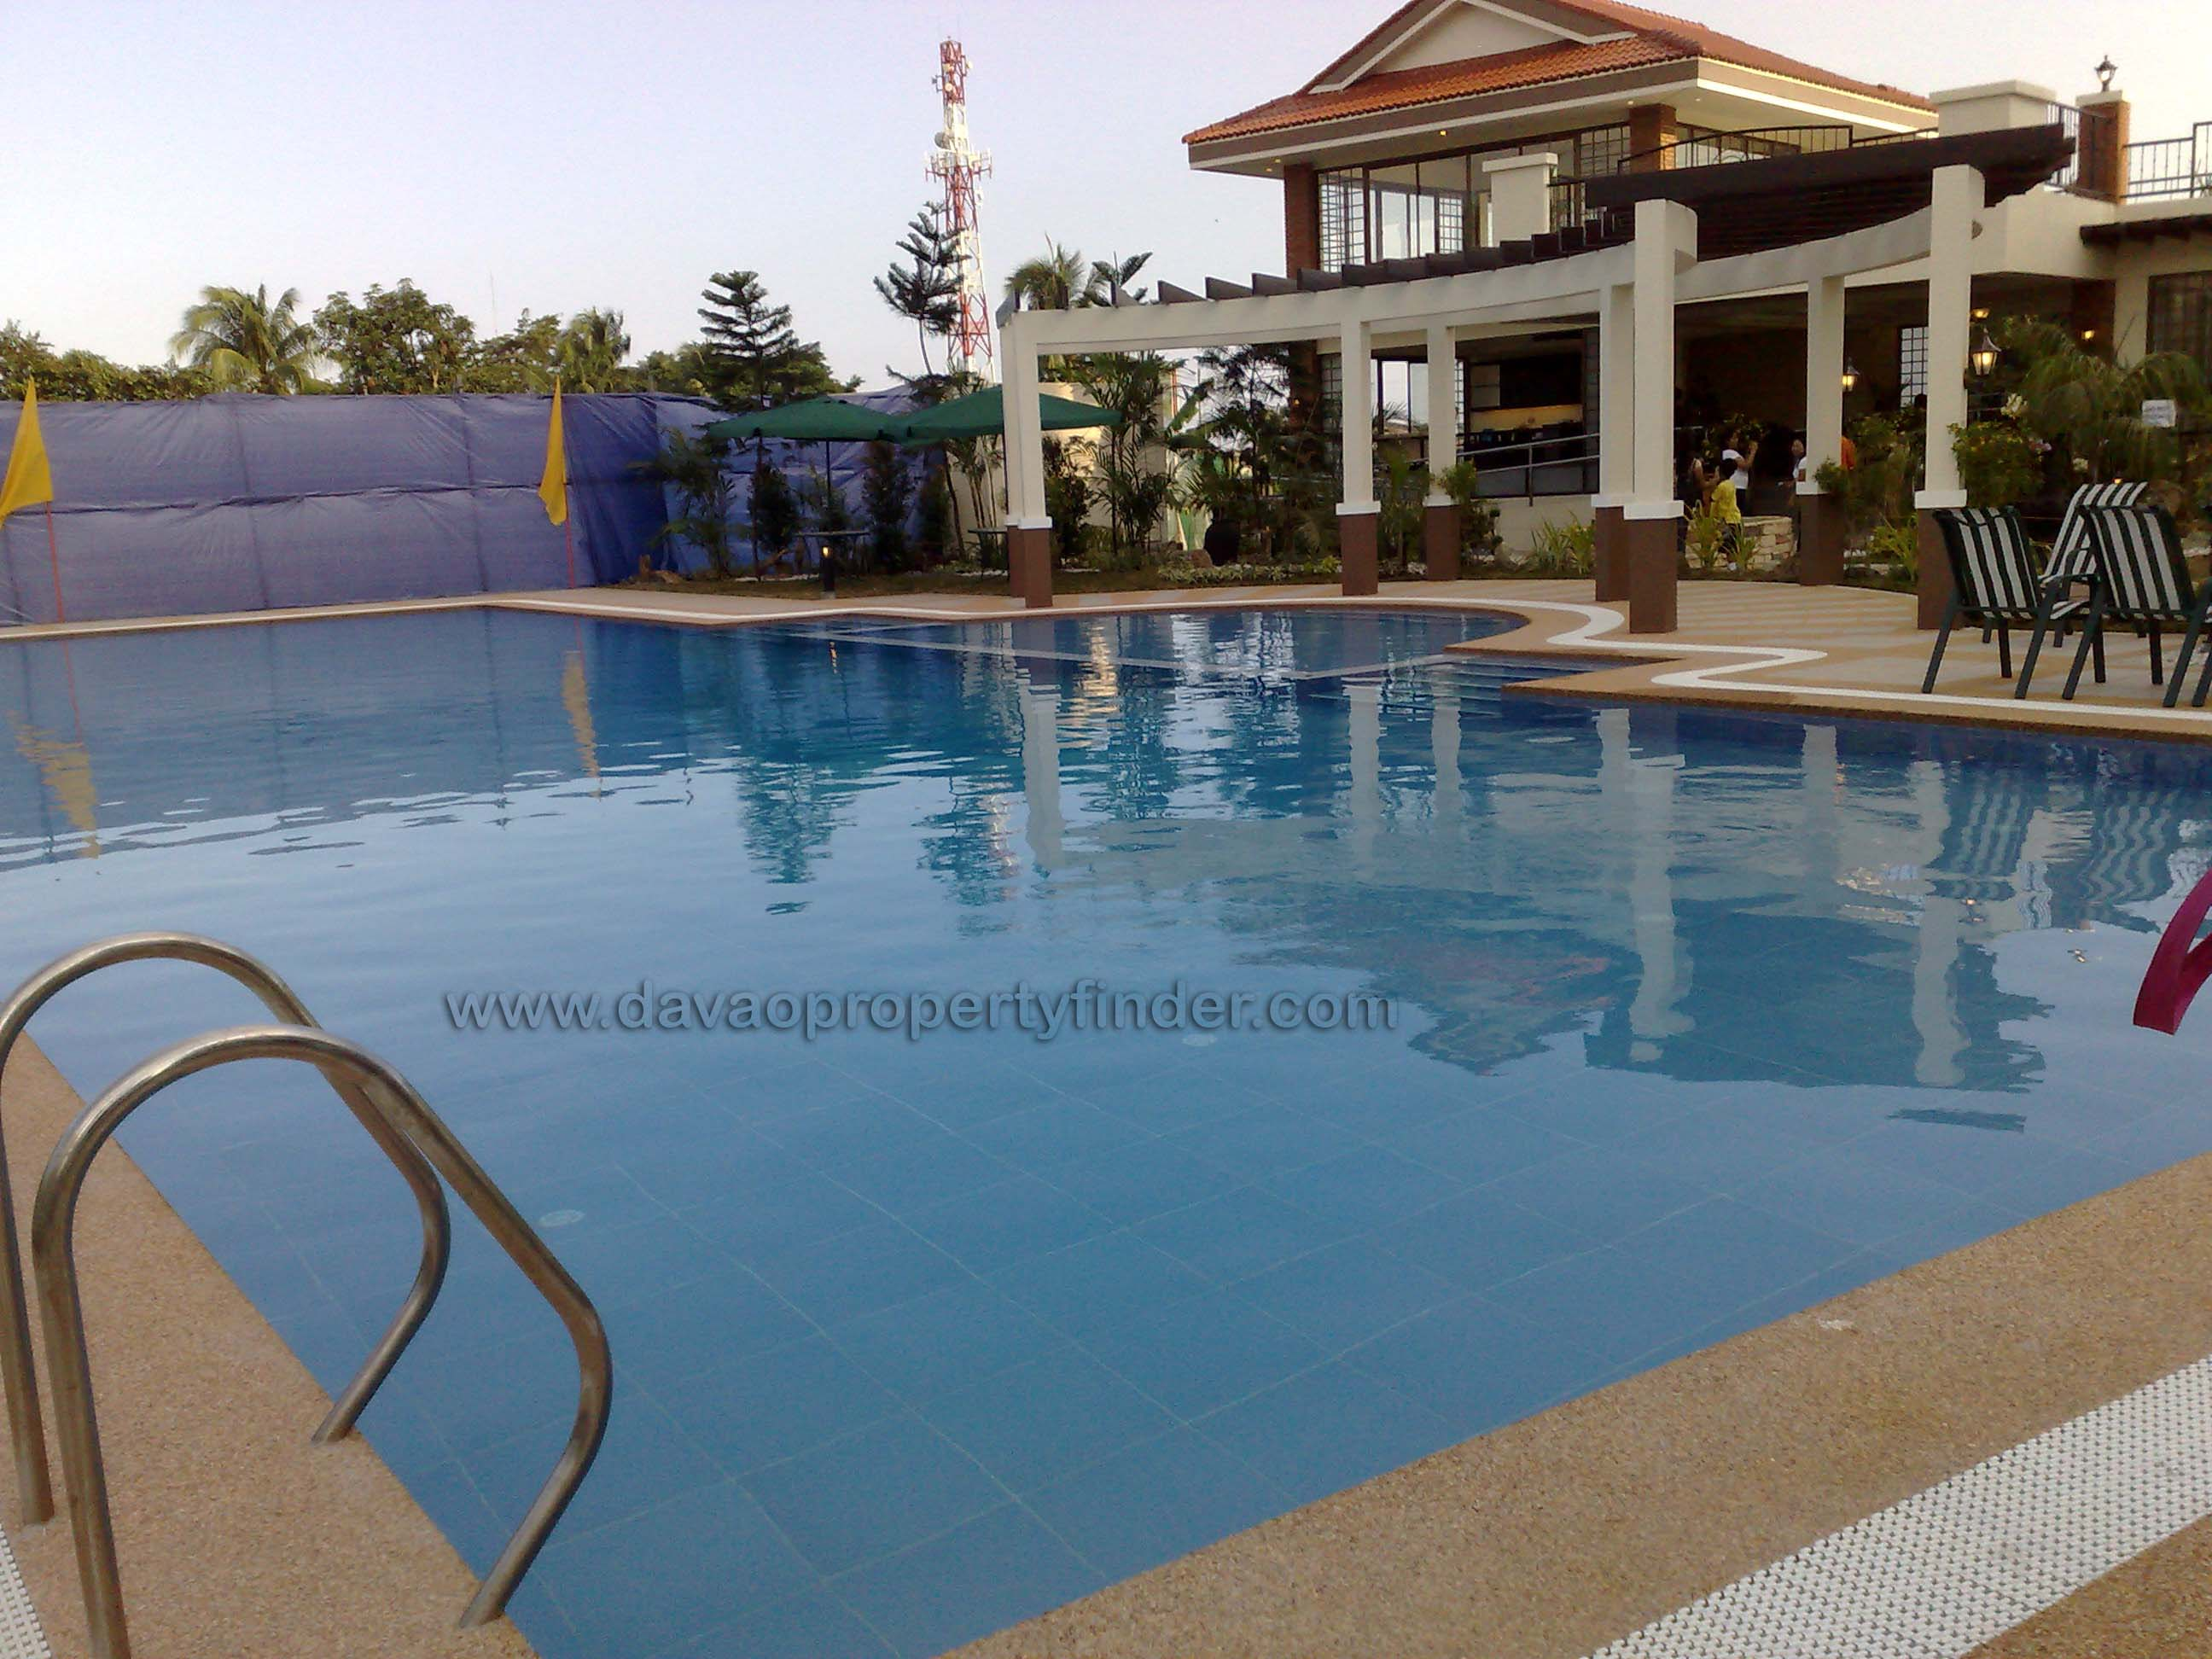 Magallanes Residences Davao Property Finder